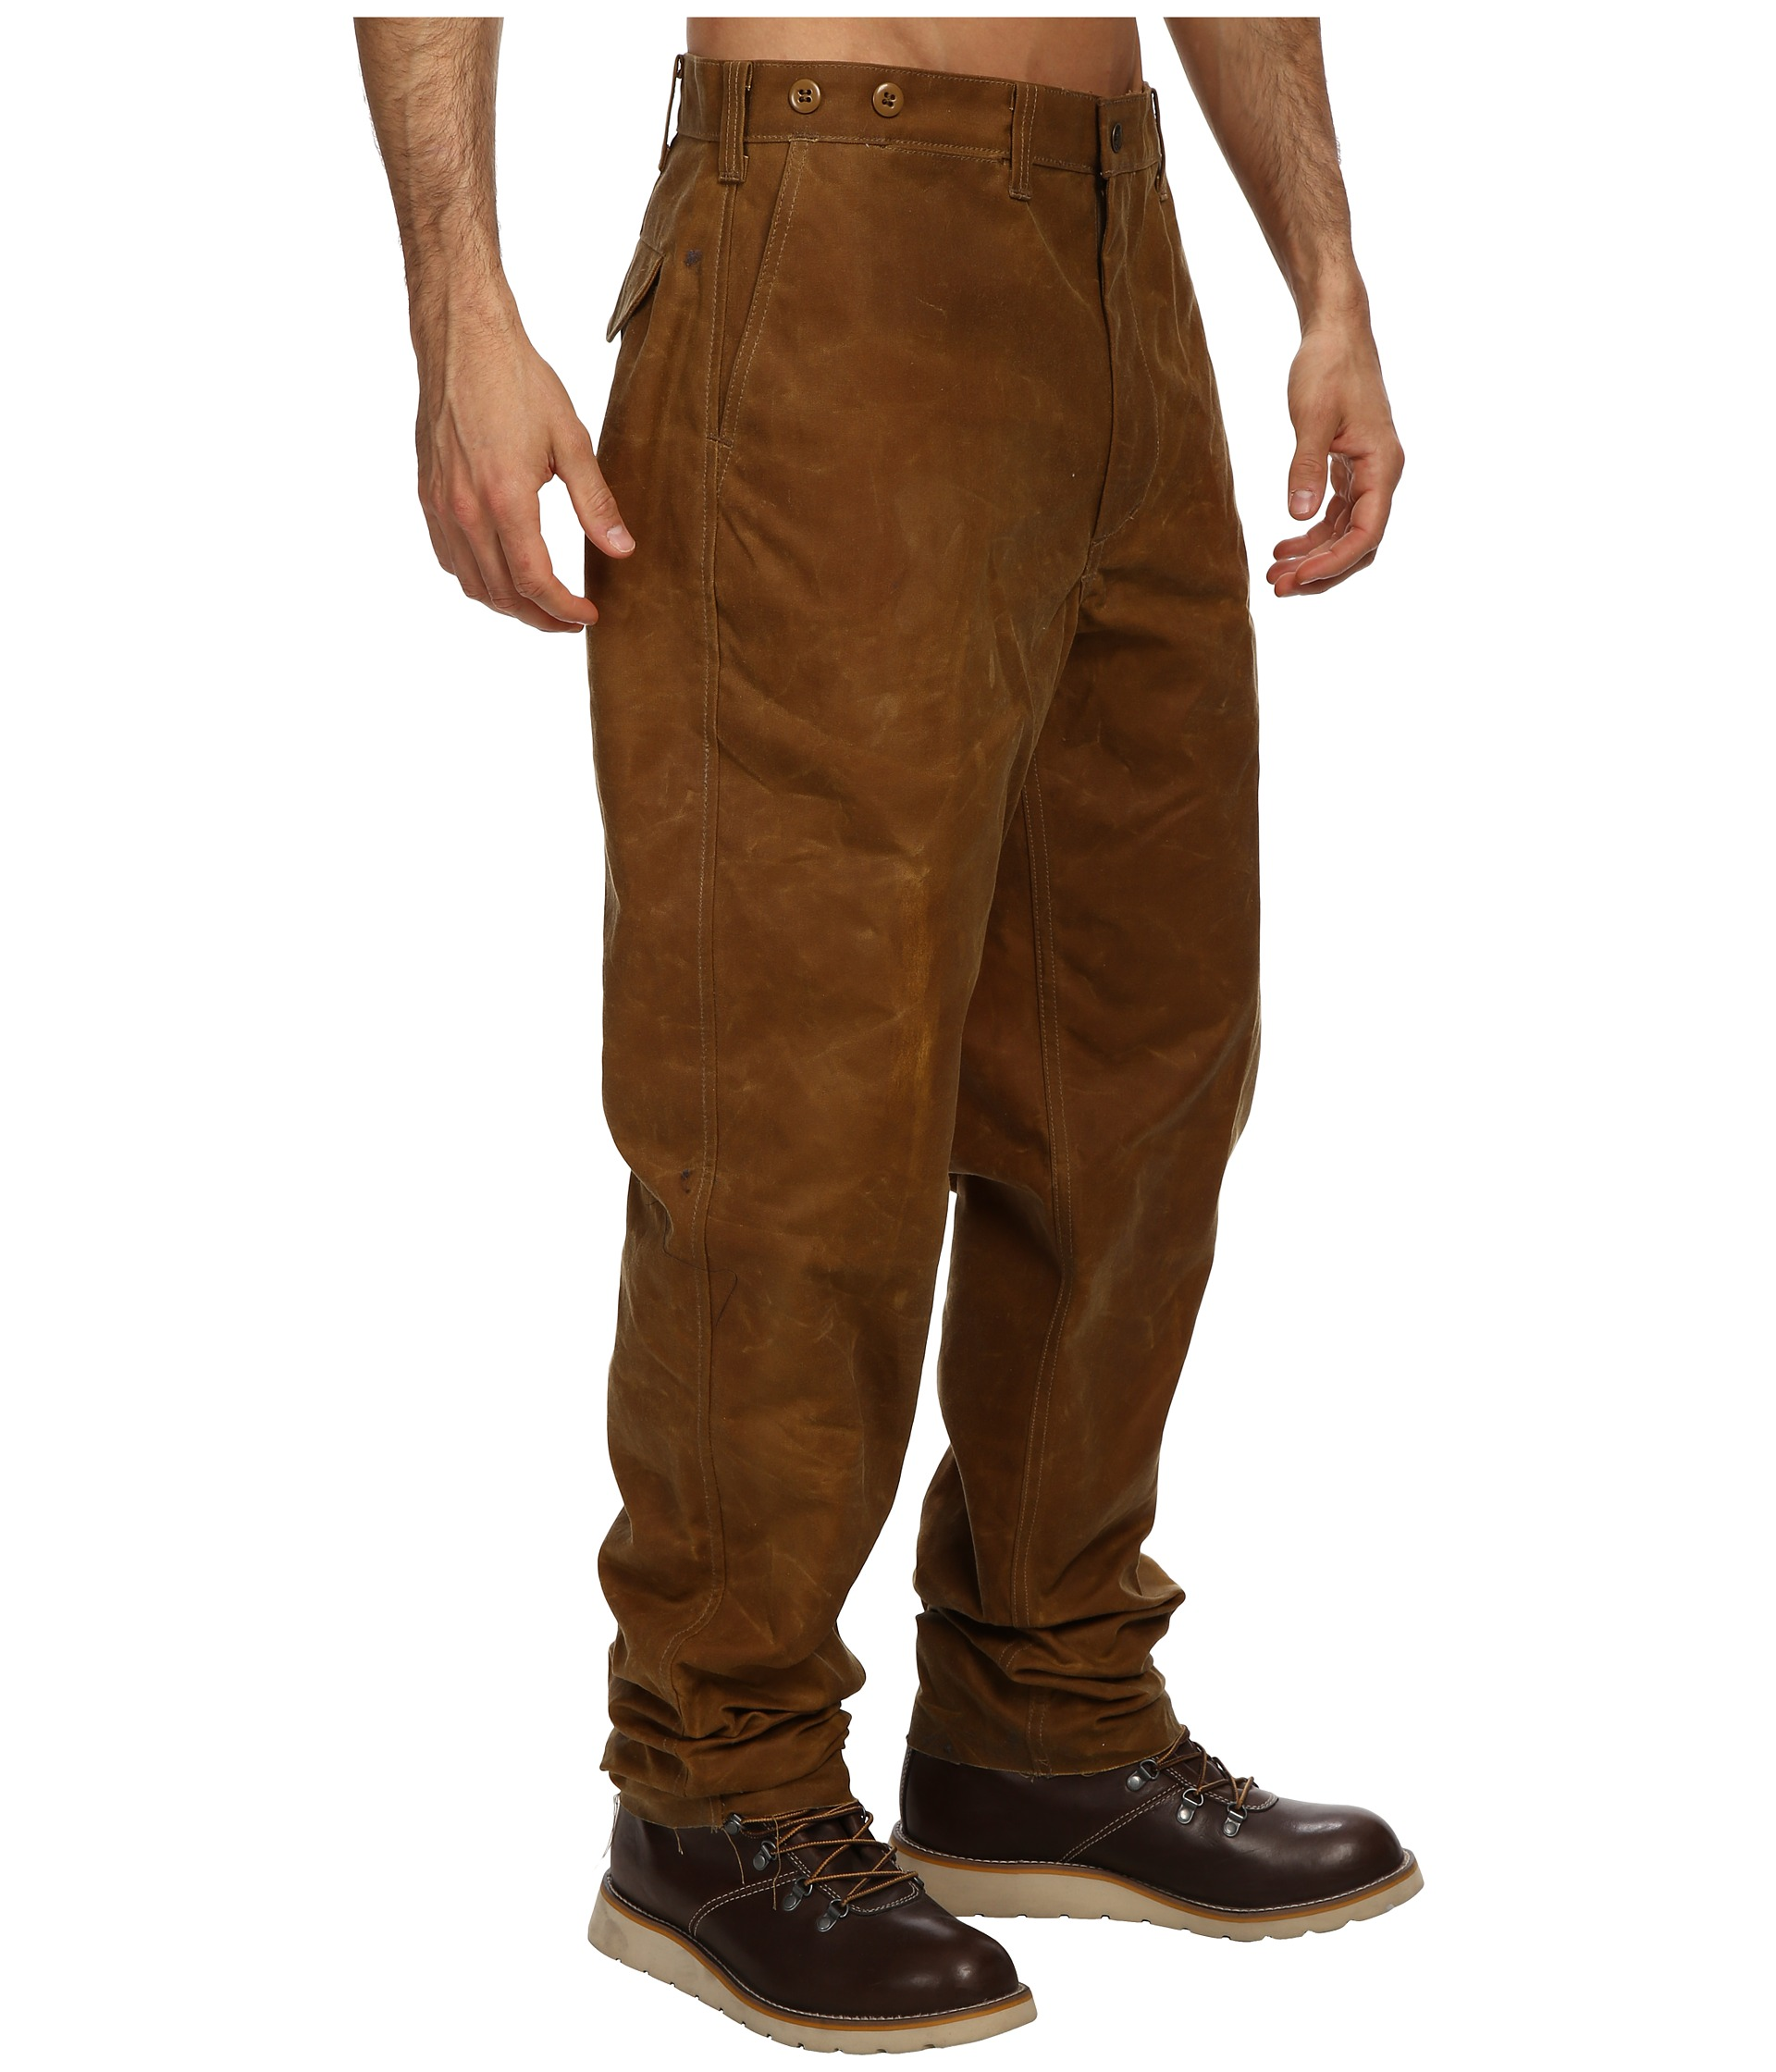 Filson double or single tin pants